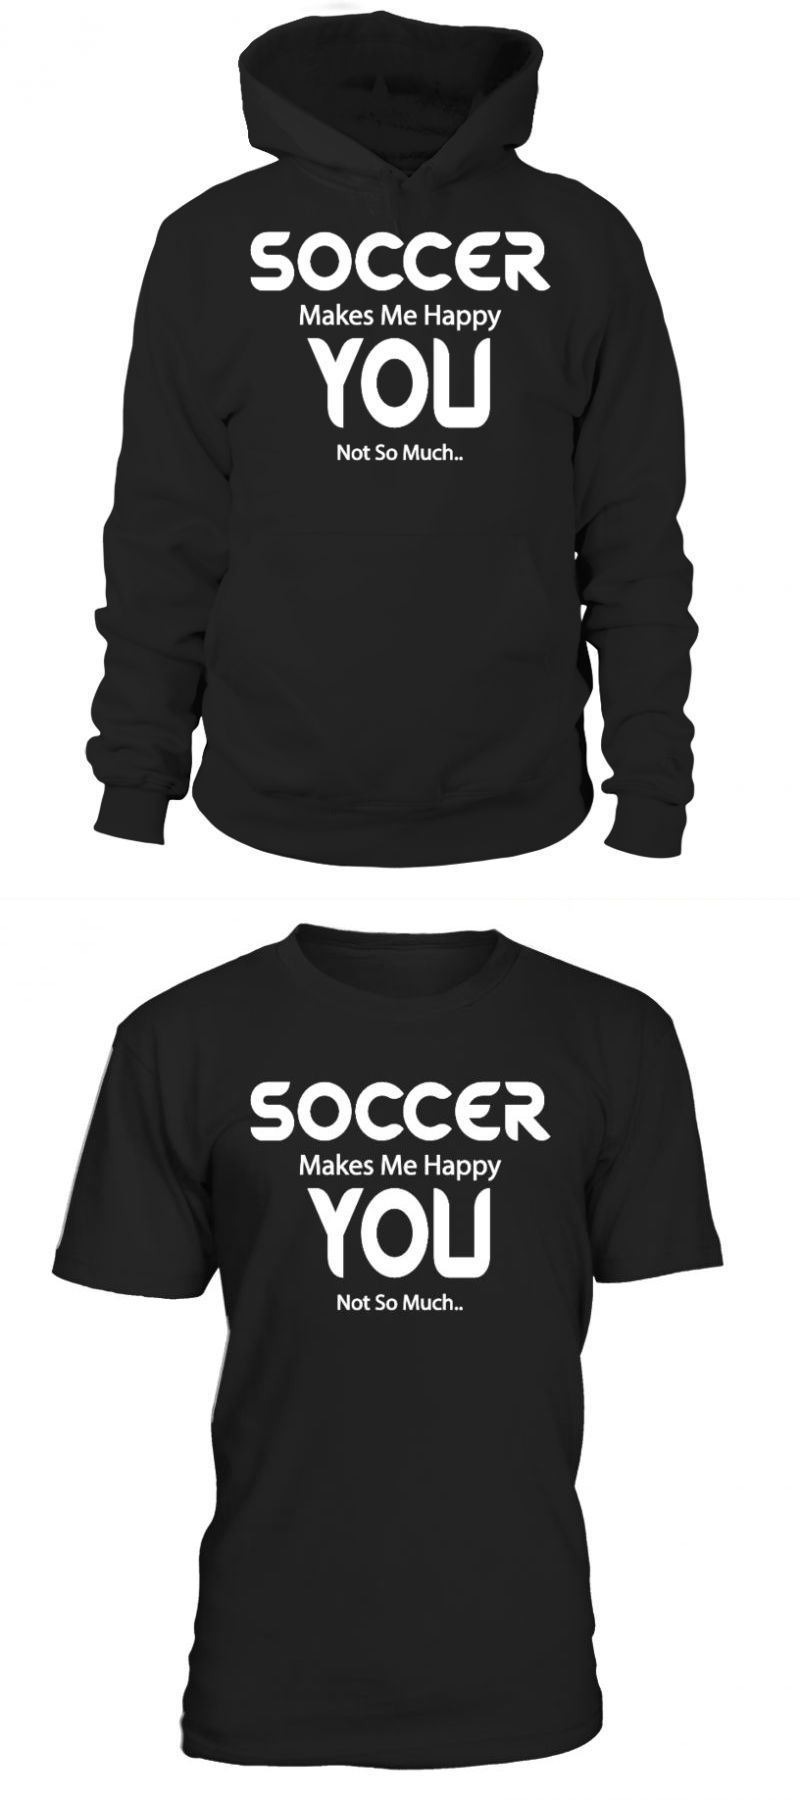 T Shirt Design Ideas For Football Games Soccer Makes Me Happy T